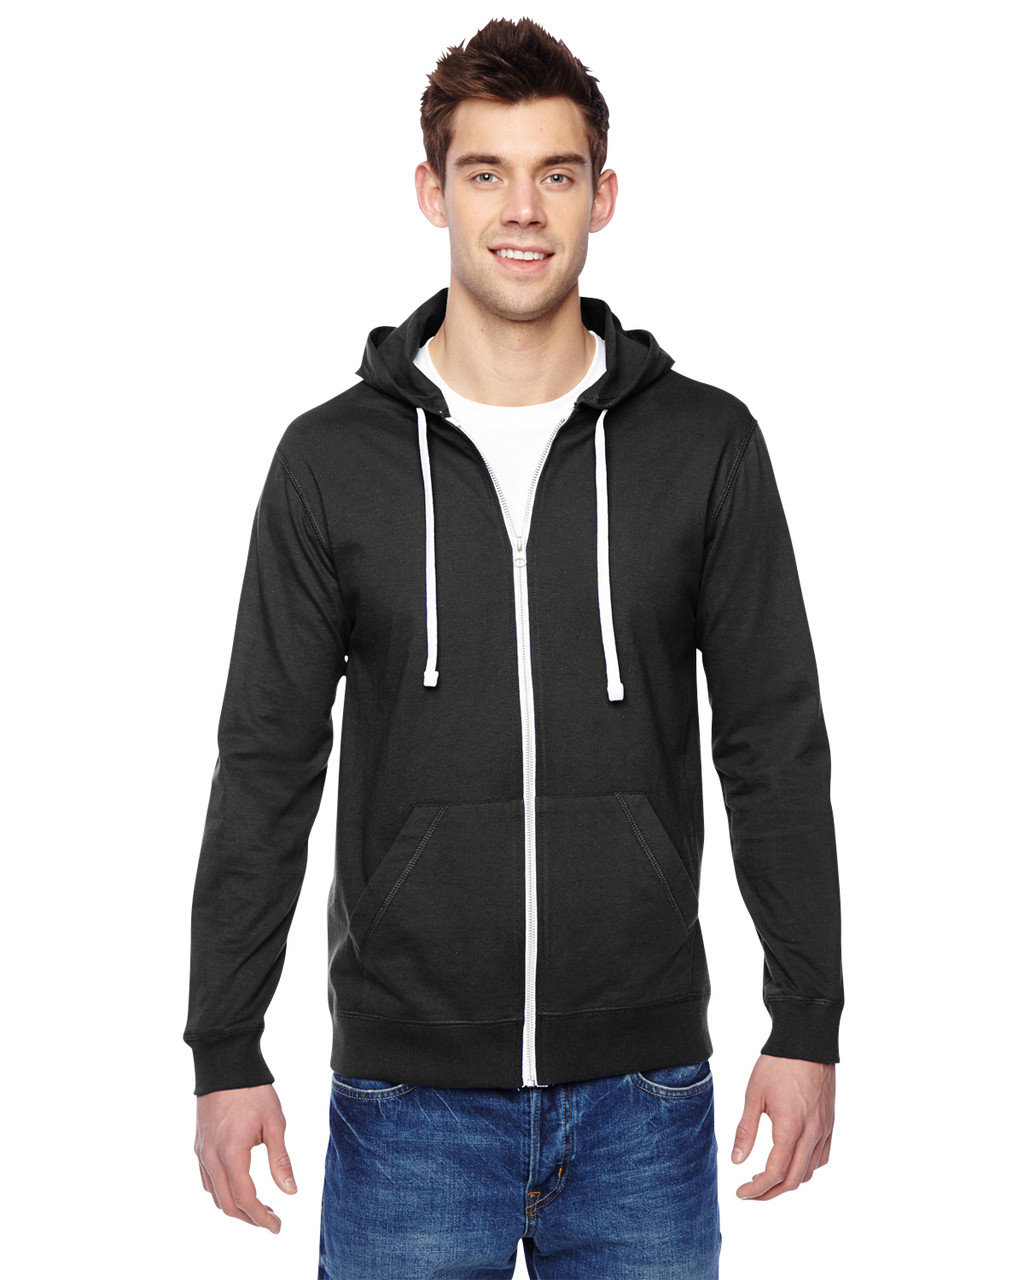 Black - SF60R Fruit of the Loom Softspun Cotton Jersey Full-Zip Hoodie | Blankclothing.ca